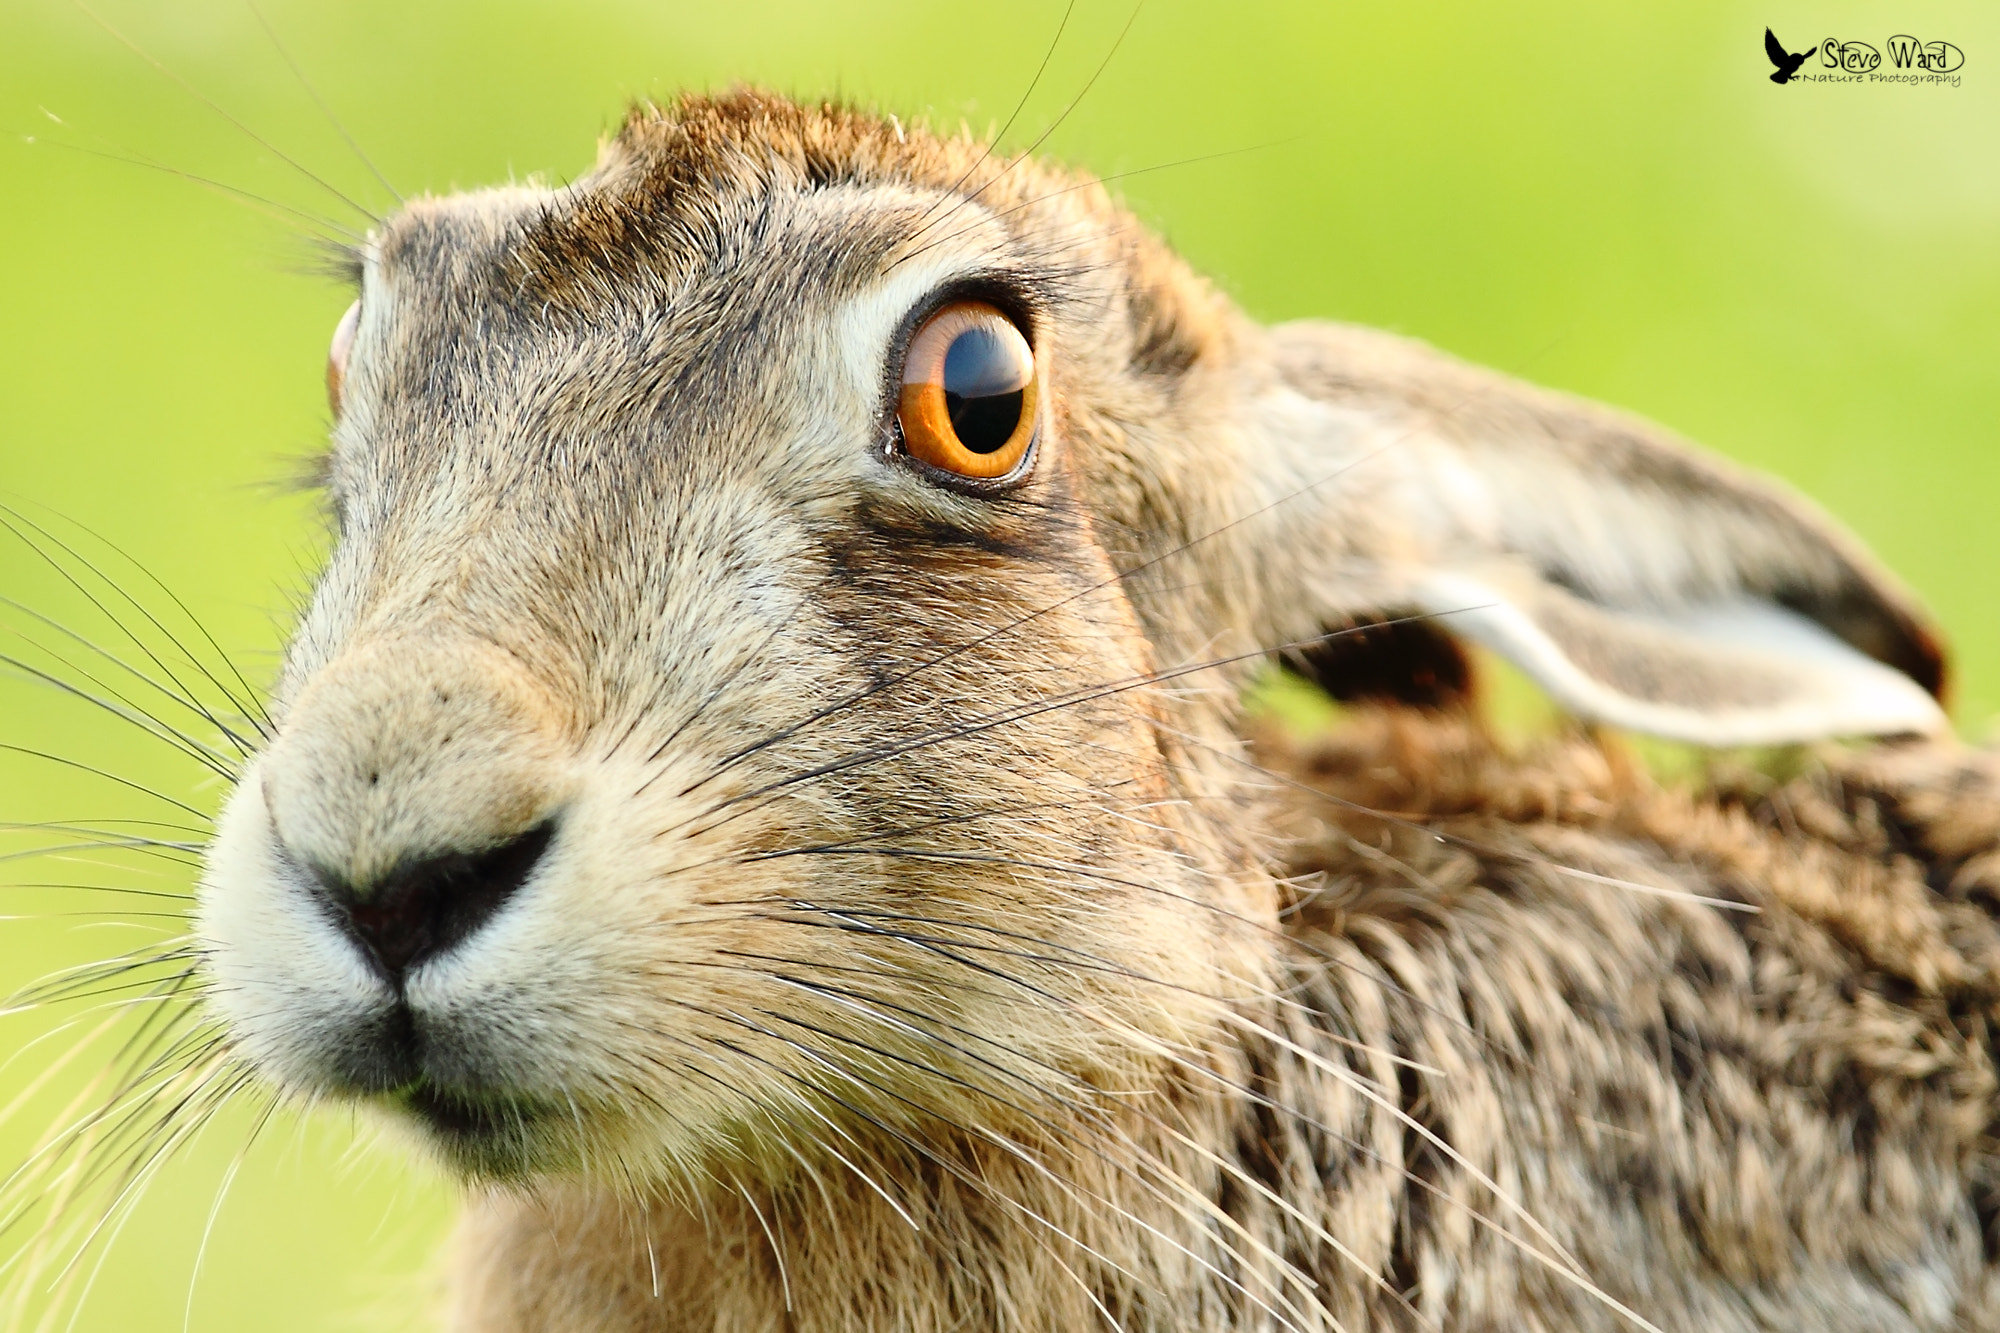 Photograph There's a hare in my eye by Steven Ward  on 500px